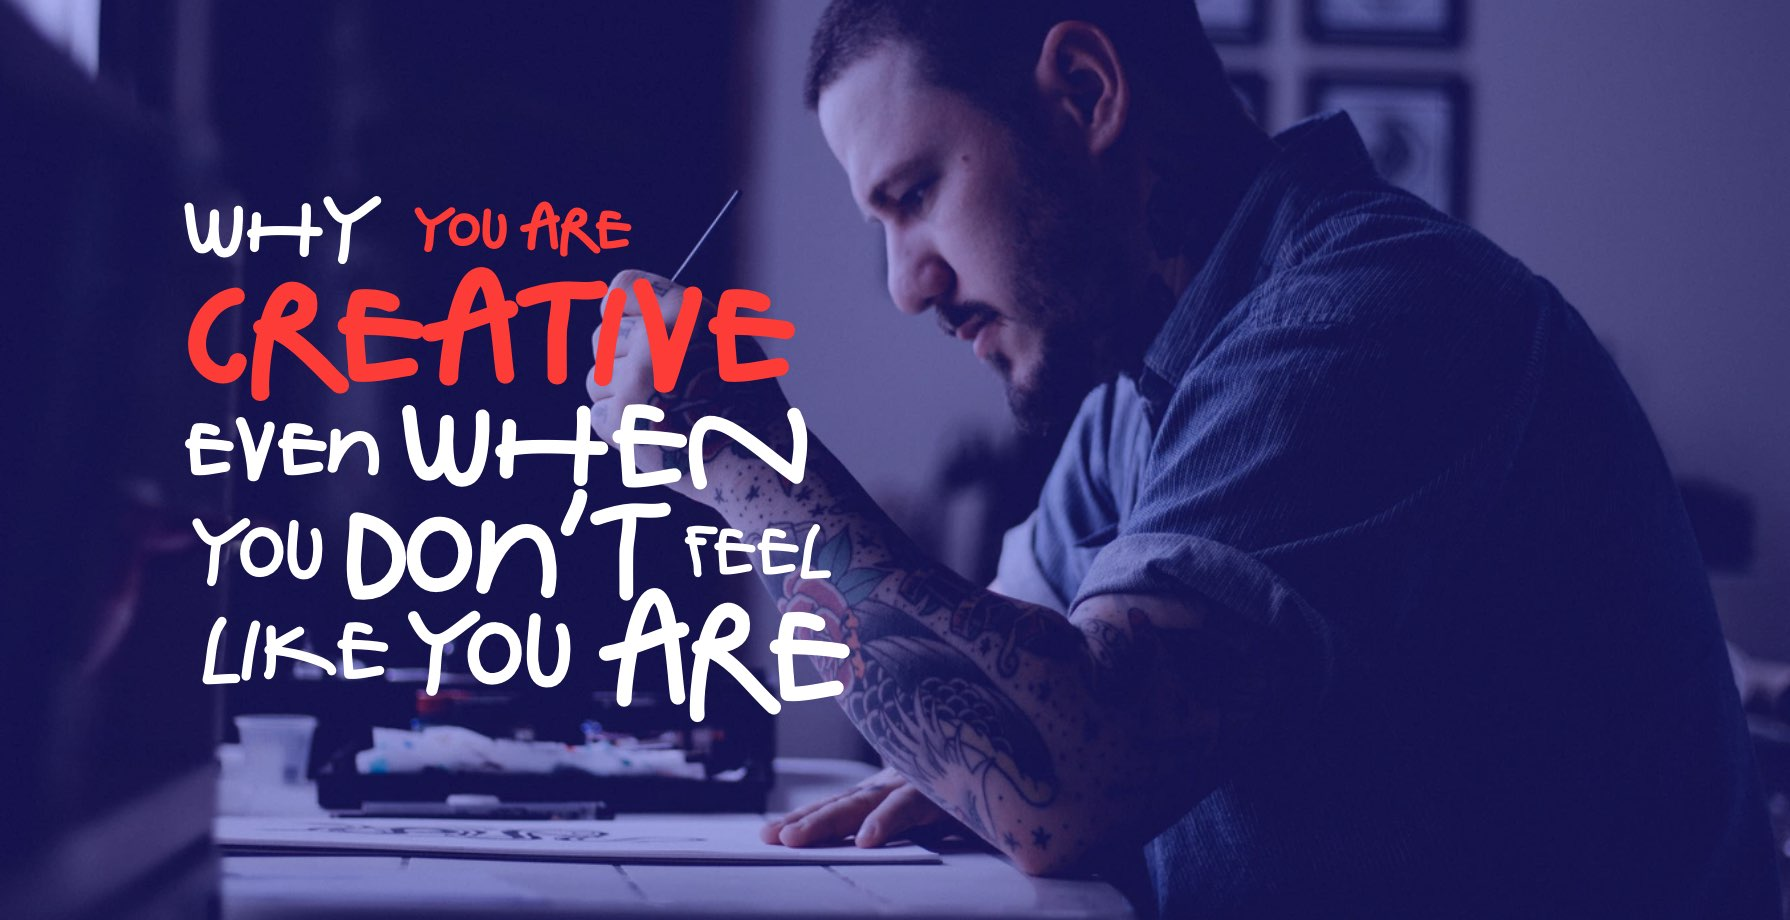 Why You Are Creative Even When You Don't Feel Like You Are